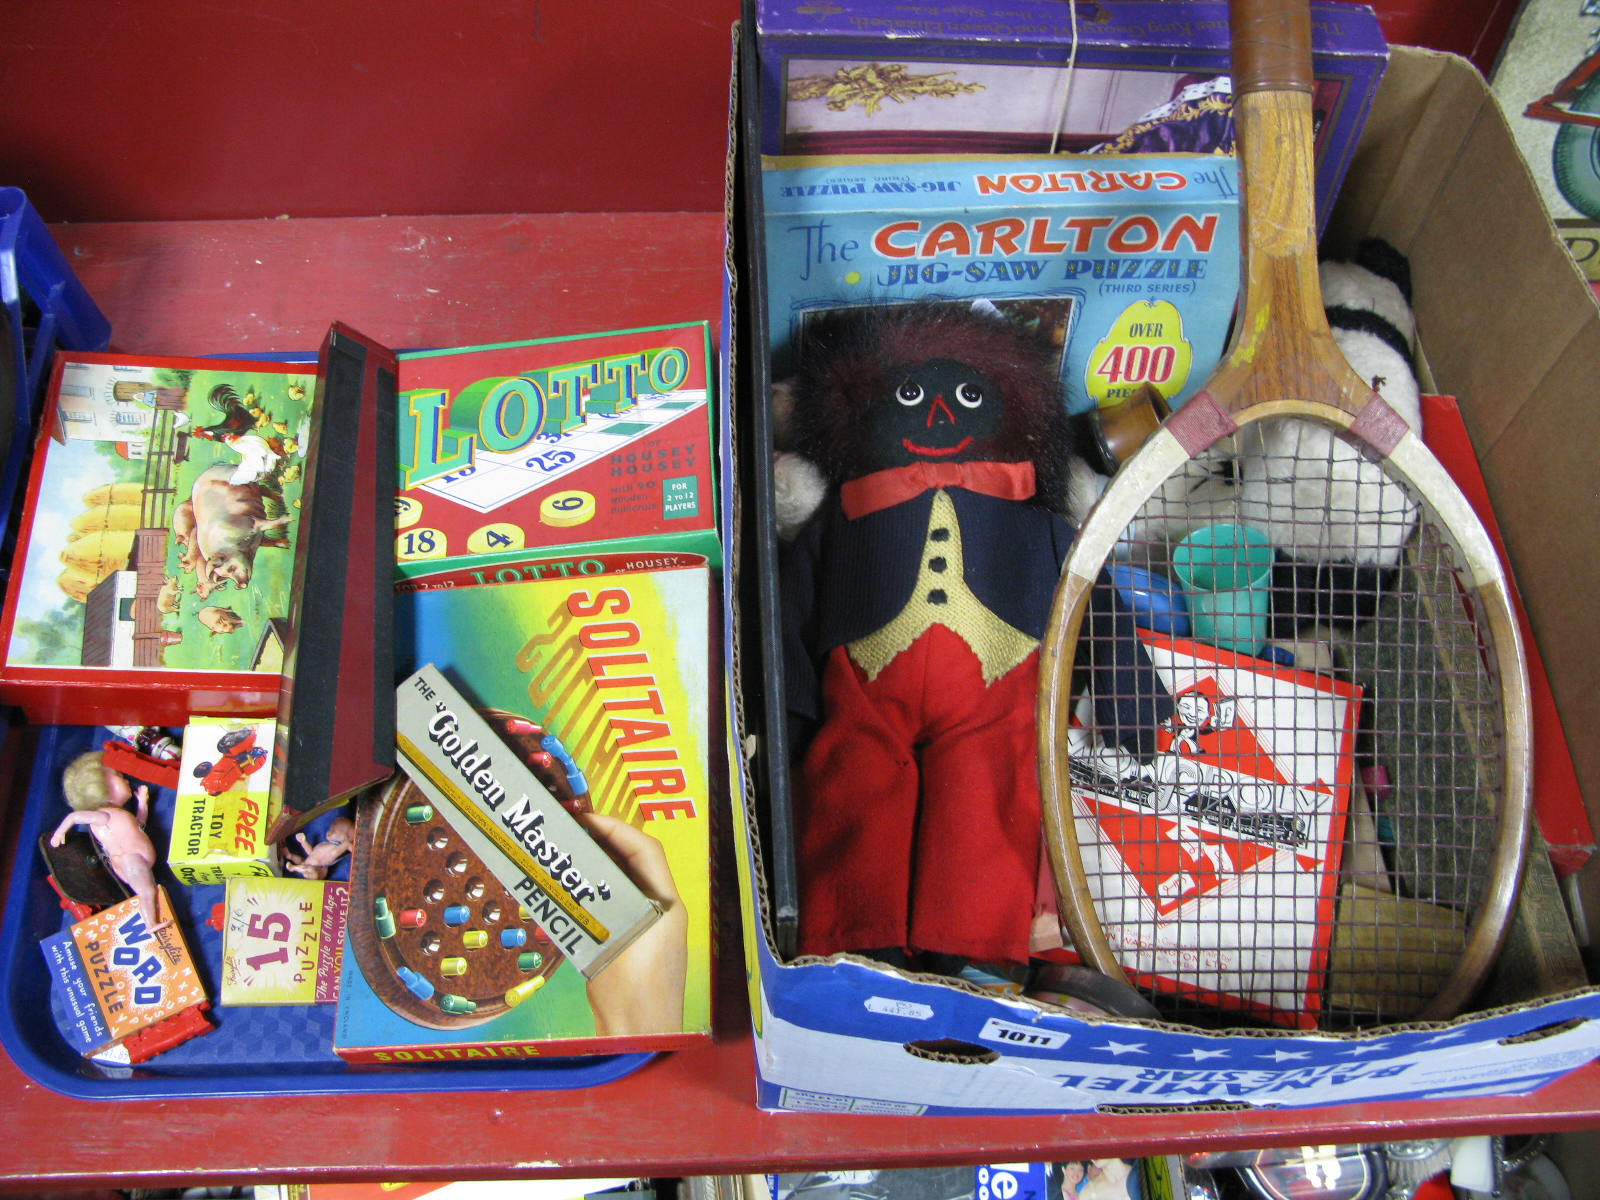 Lot 1011 - Vintage Games etc- Solitaire, Lotto, 'Farmyard' print, Mirrorscope, jigsaw puzzles, tennis racket,